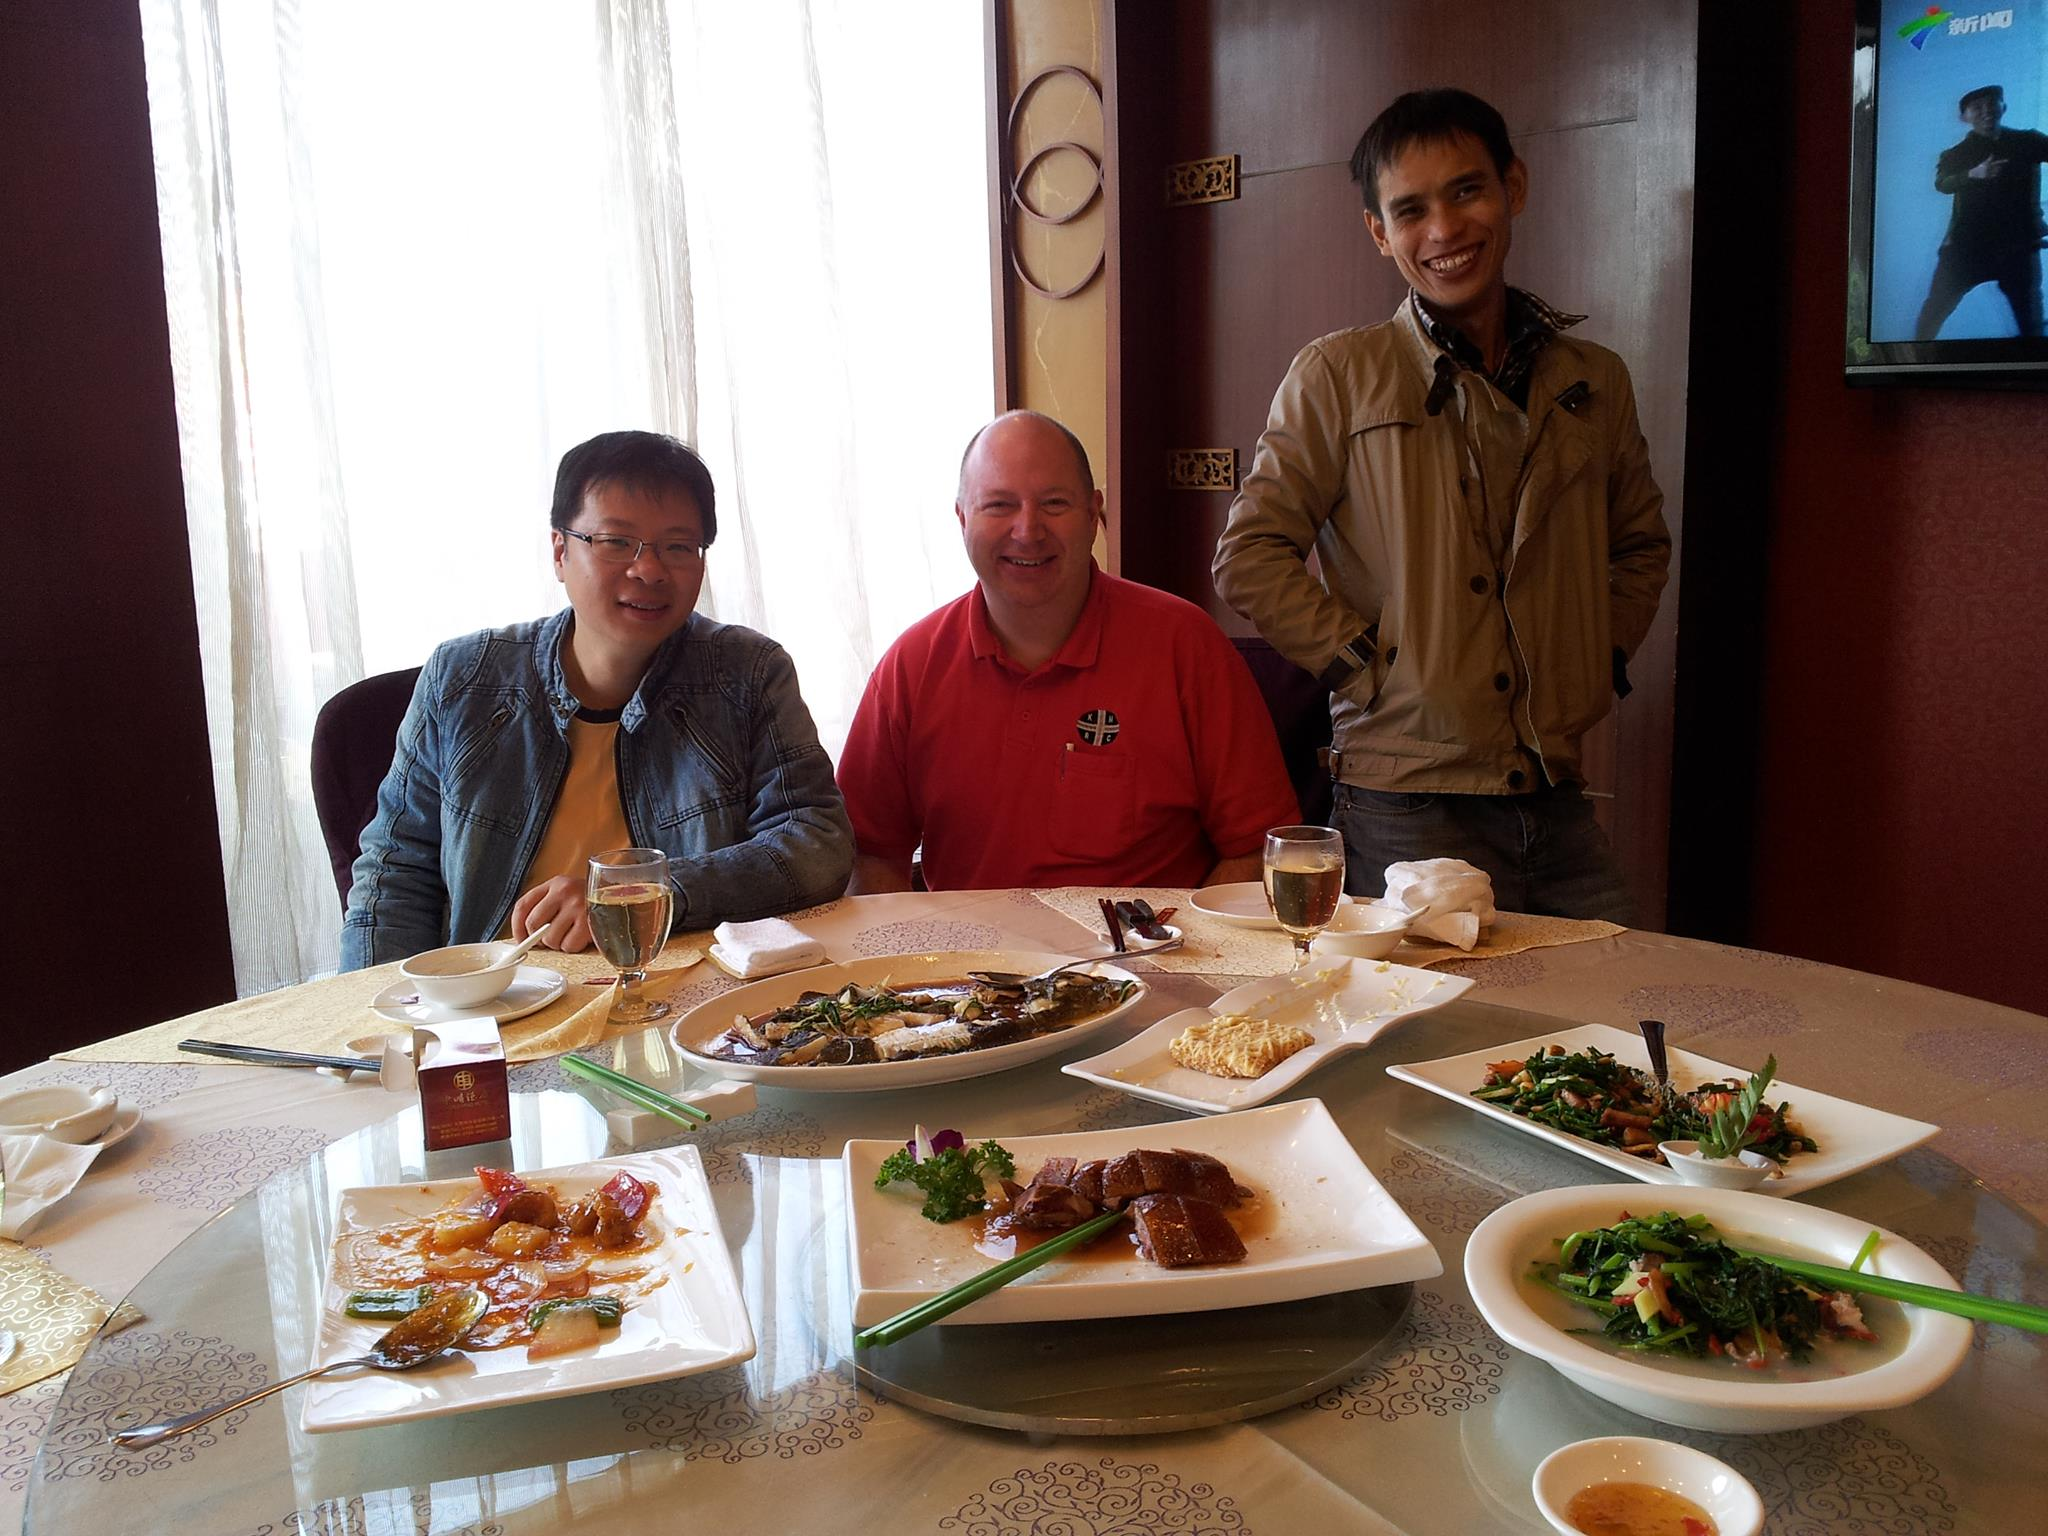 Chinese Meal Image